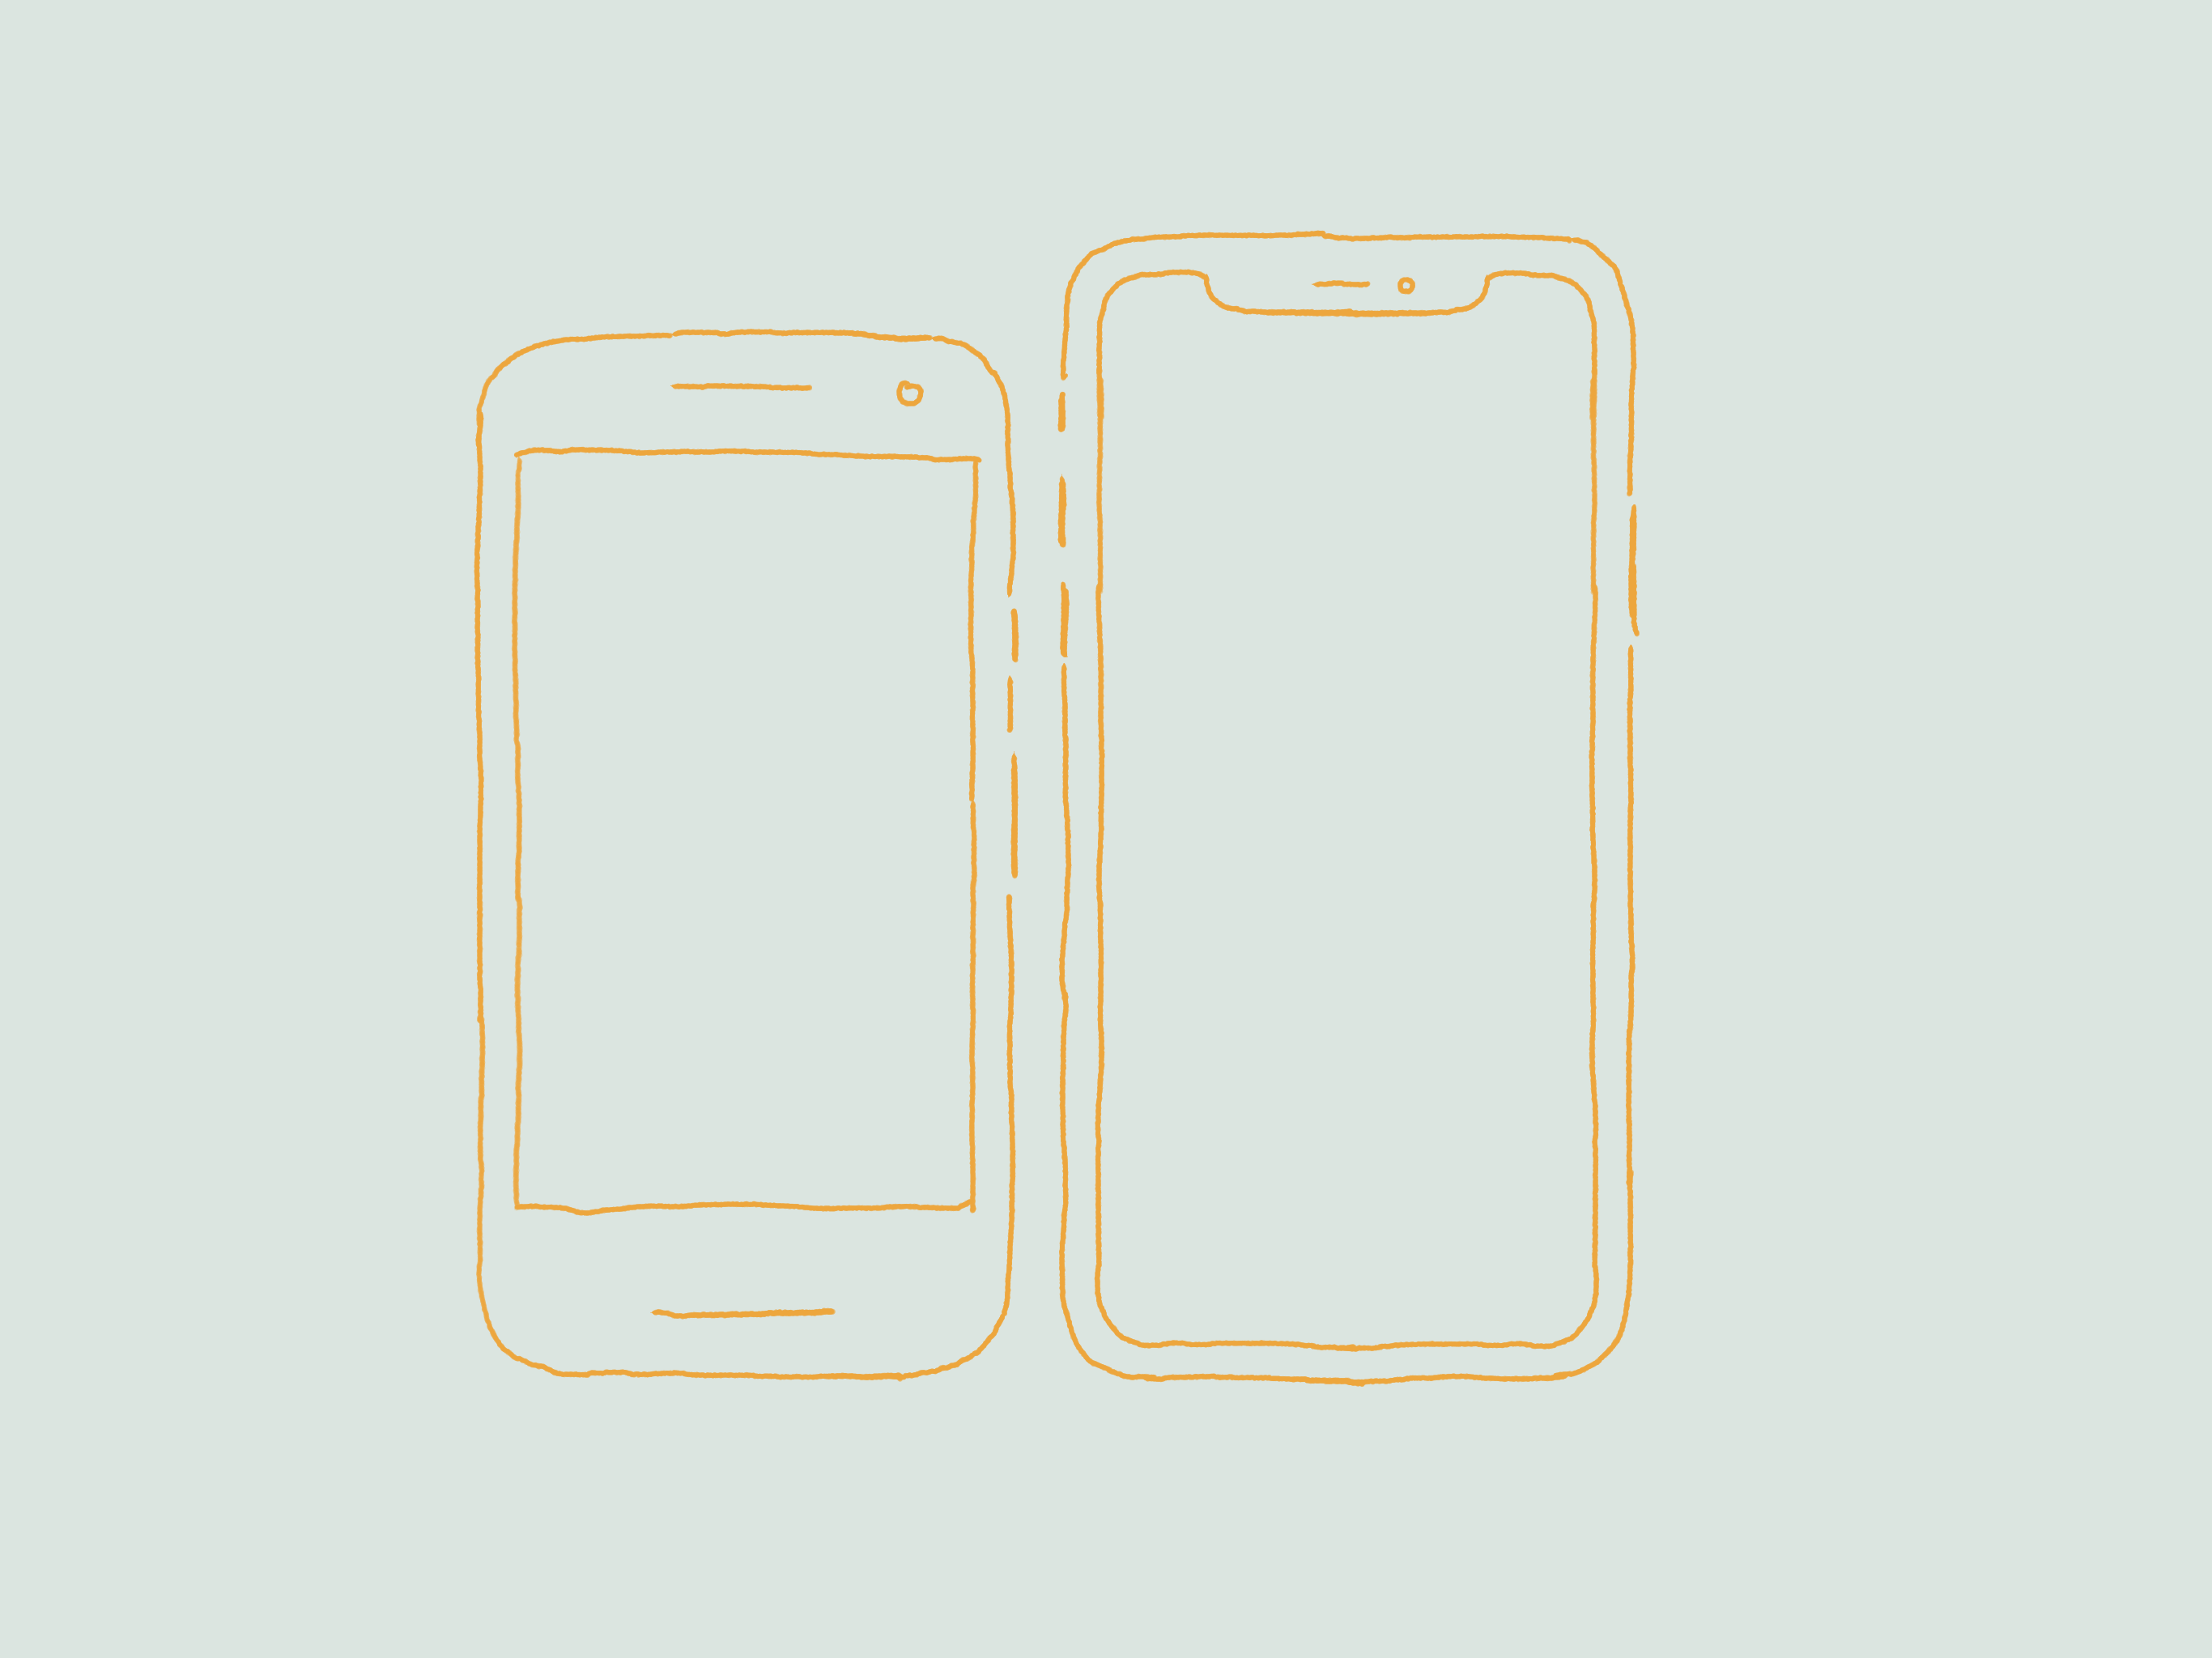 Outlines of an iOS and Android device